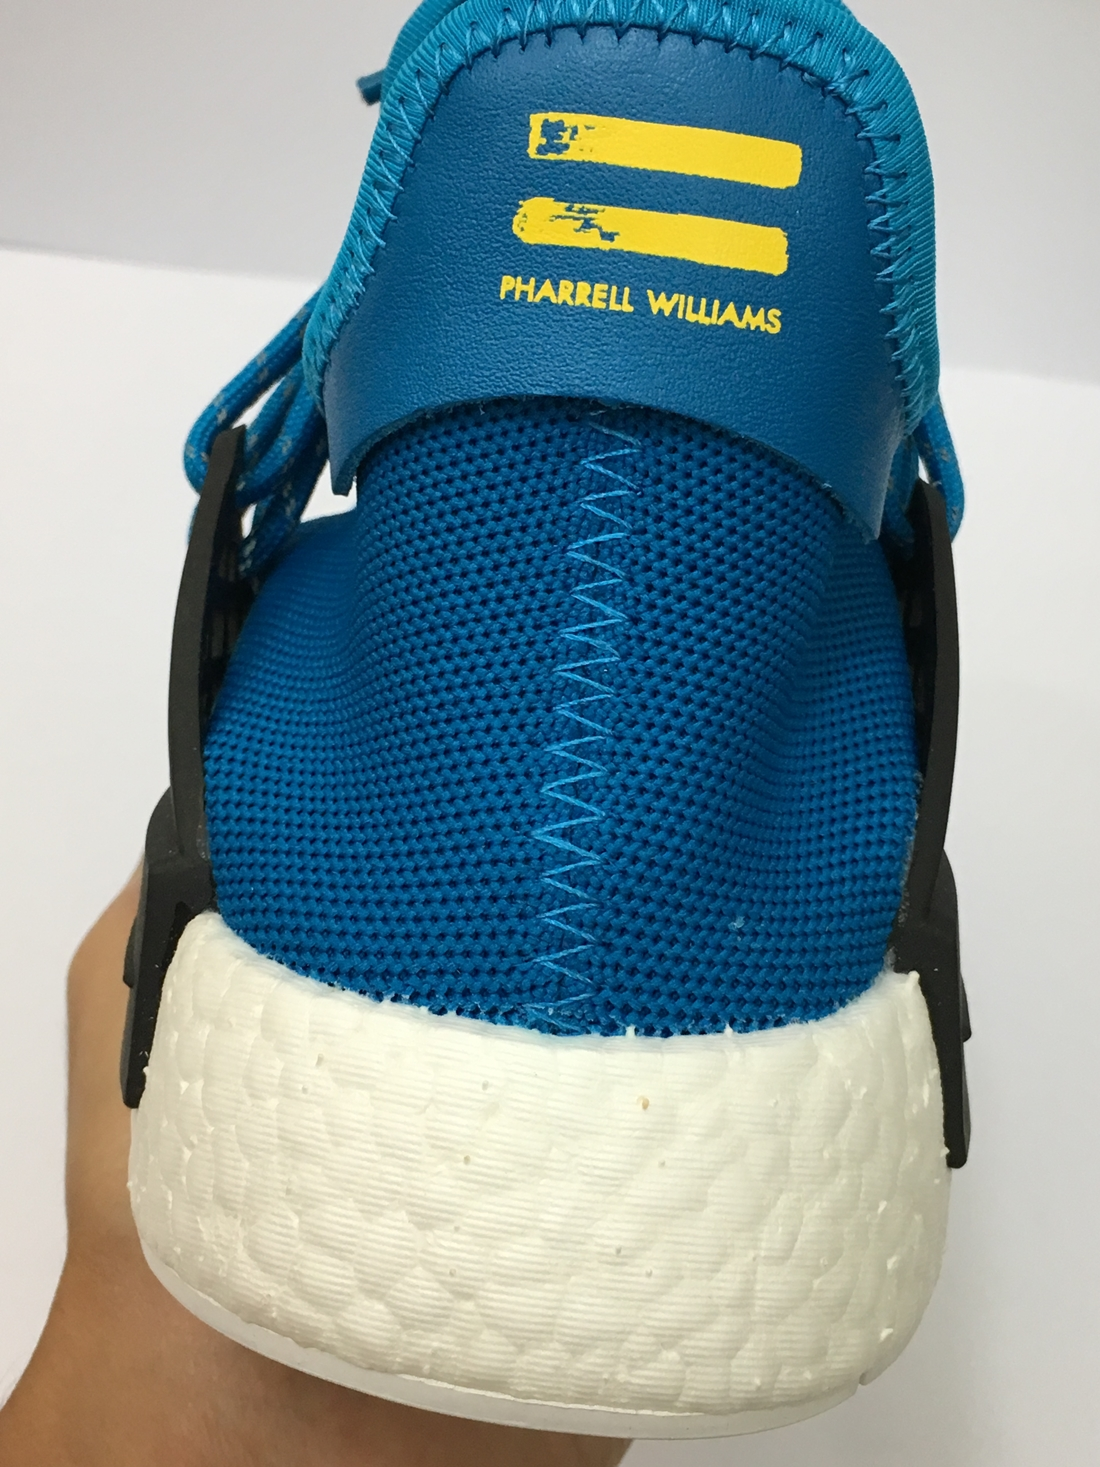 adidas X Pharrell Human Race HU NMD Boost Limited Blue Colorway